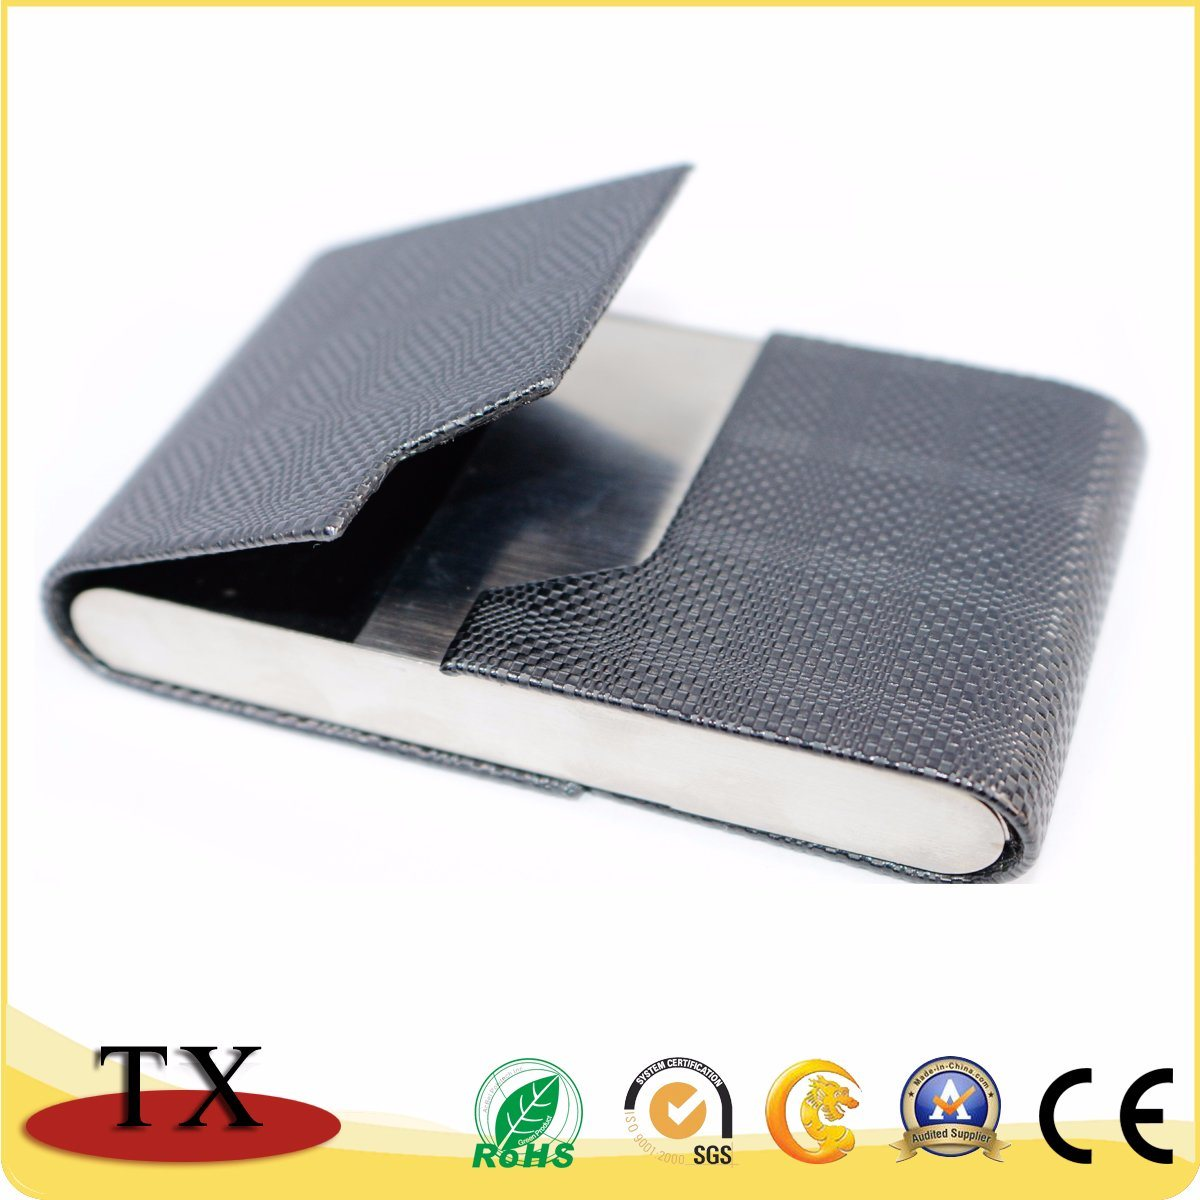 China Customized Business Metal and Leather Name Cardcase with ...